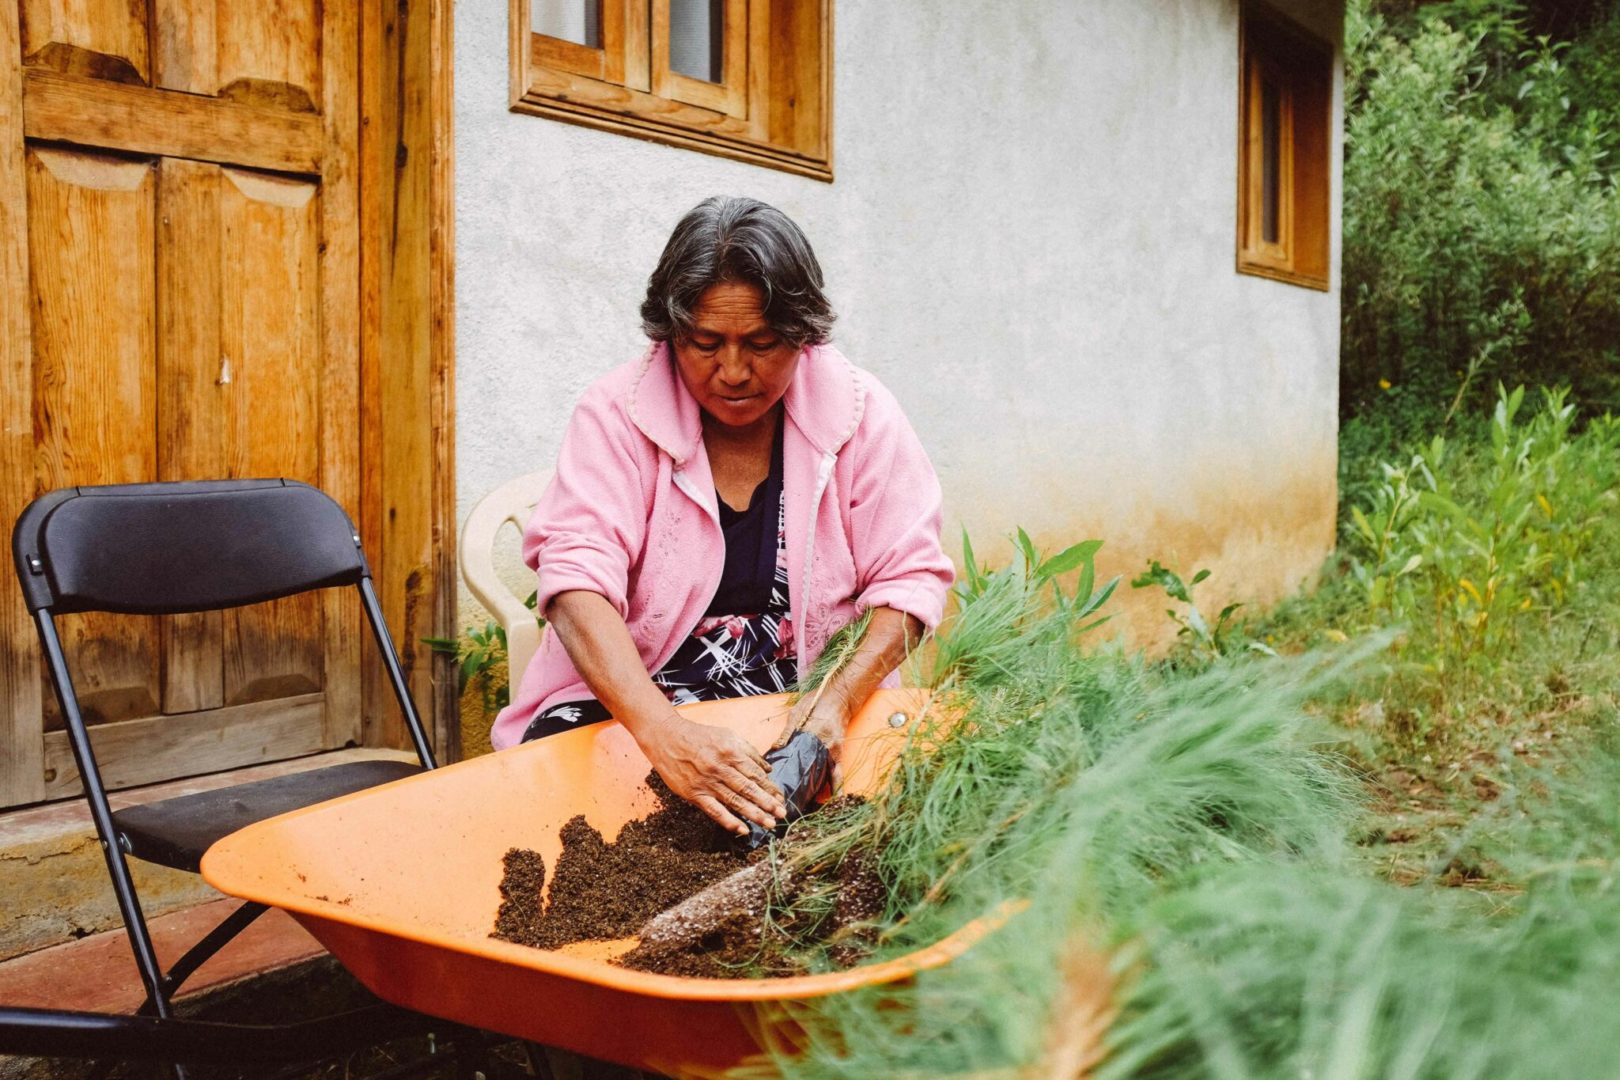 Communities like Oaxaca remind us of the connection between people and the planet.